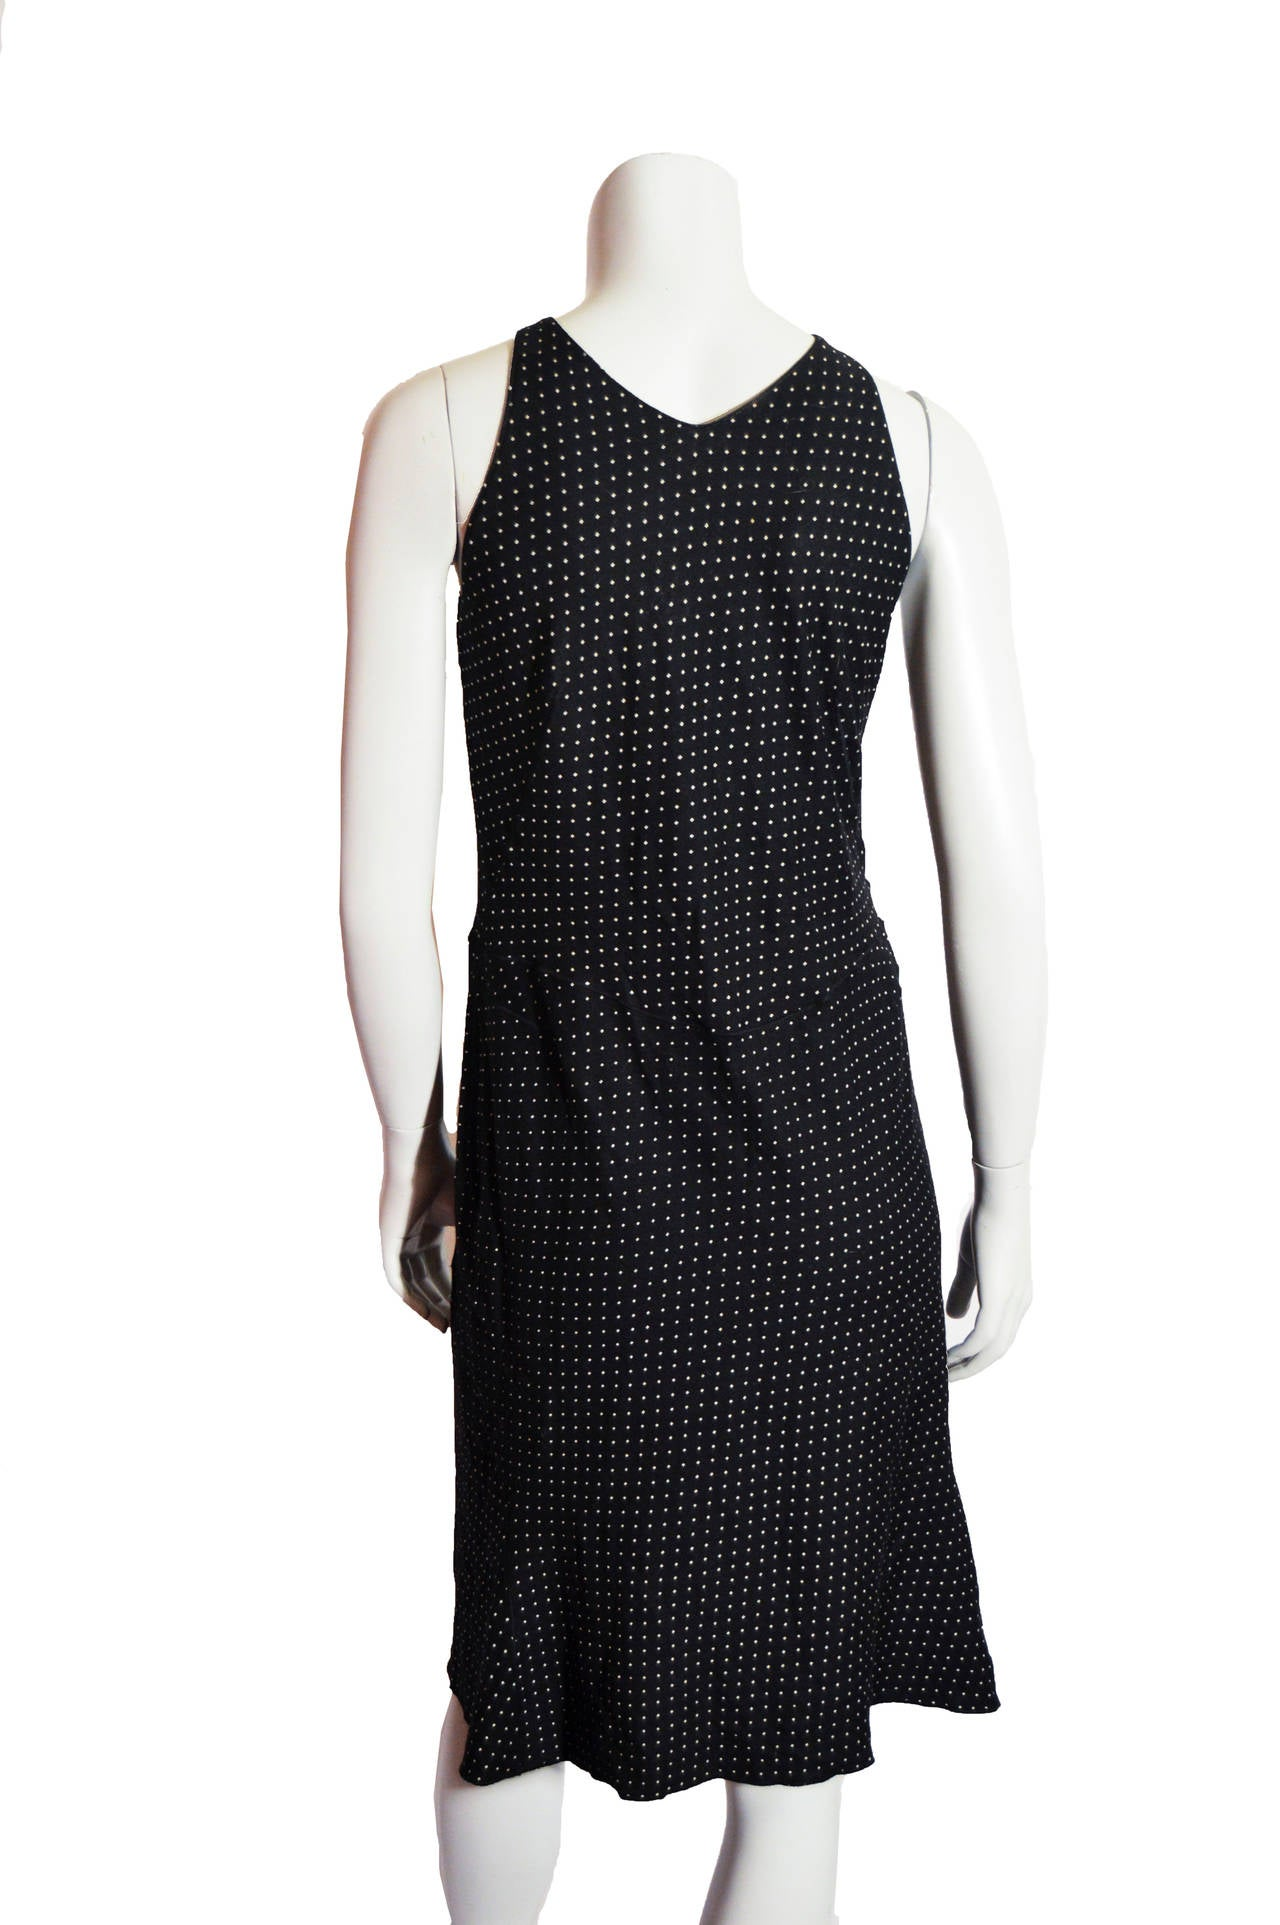 This Alaia dress is black wool and rayon with white polka dots. The dress is constructed with a size zip and shoulder hooks. The fluted skirt is longer in the back of the dress. The dress is tagged a size large.